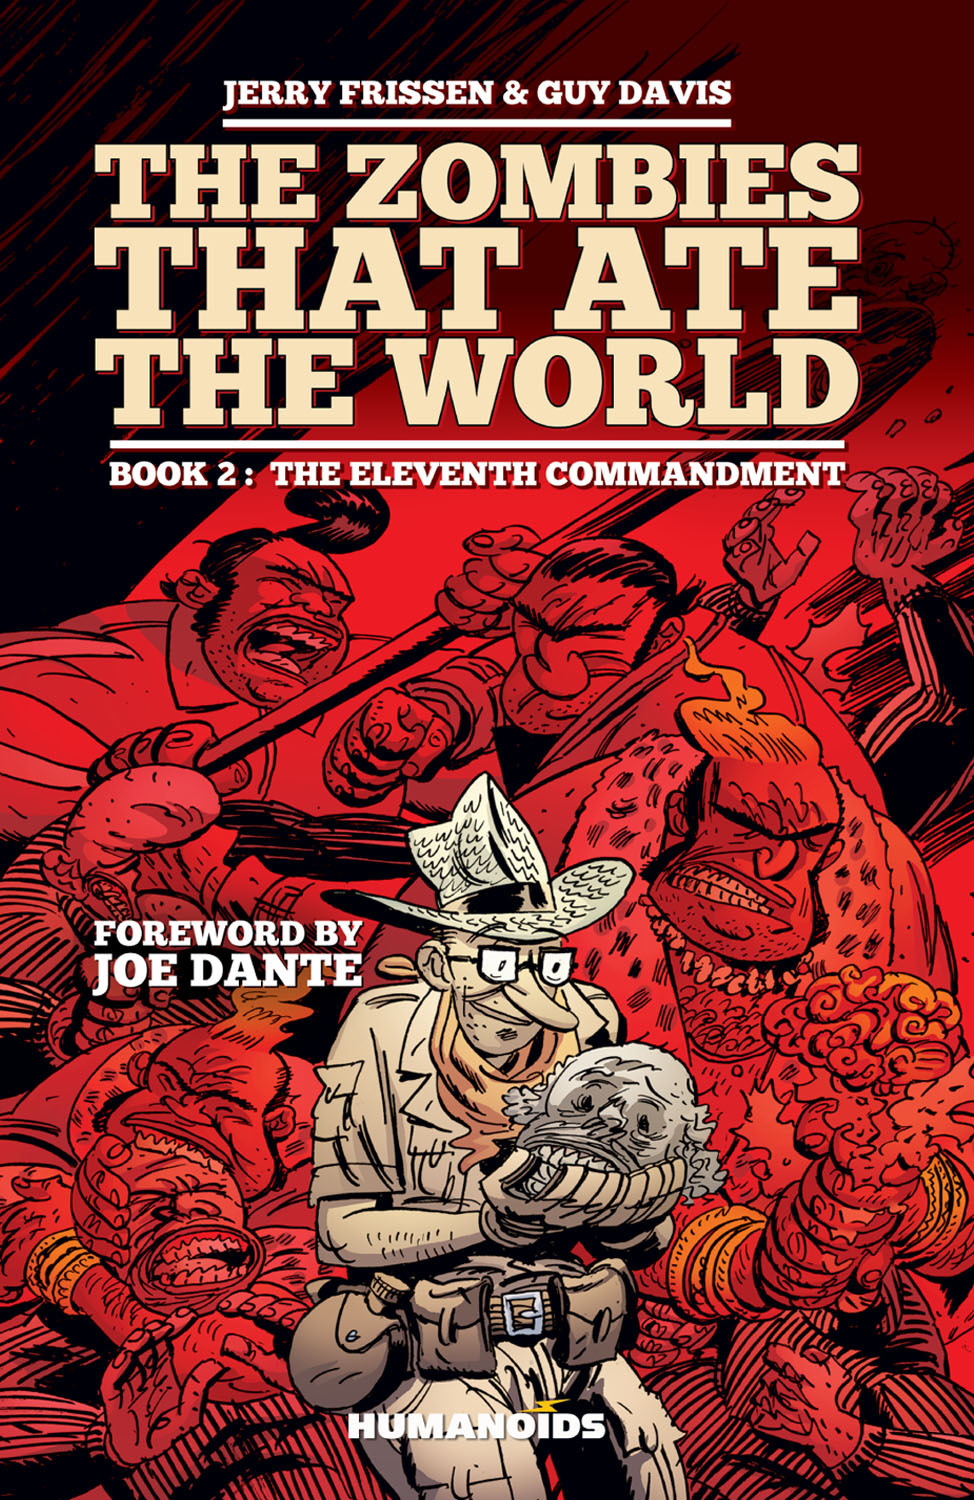 The Zombies that Ate the World #2 : The Eleventh Commandment - Hardcover Trade